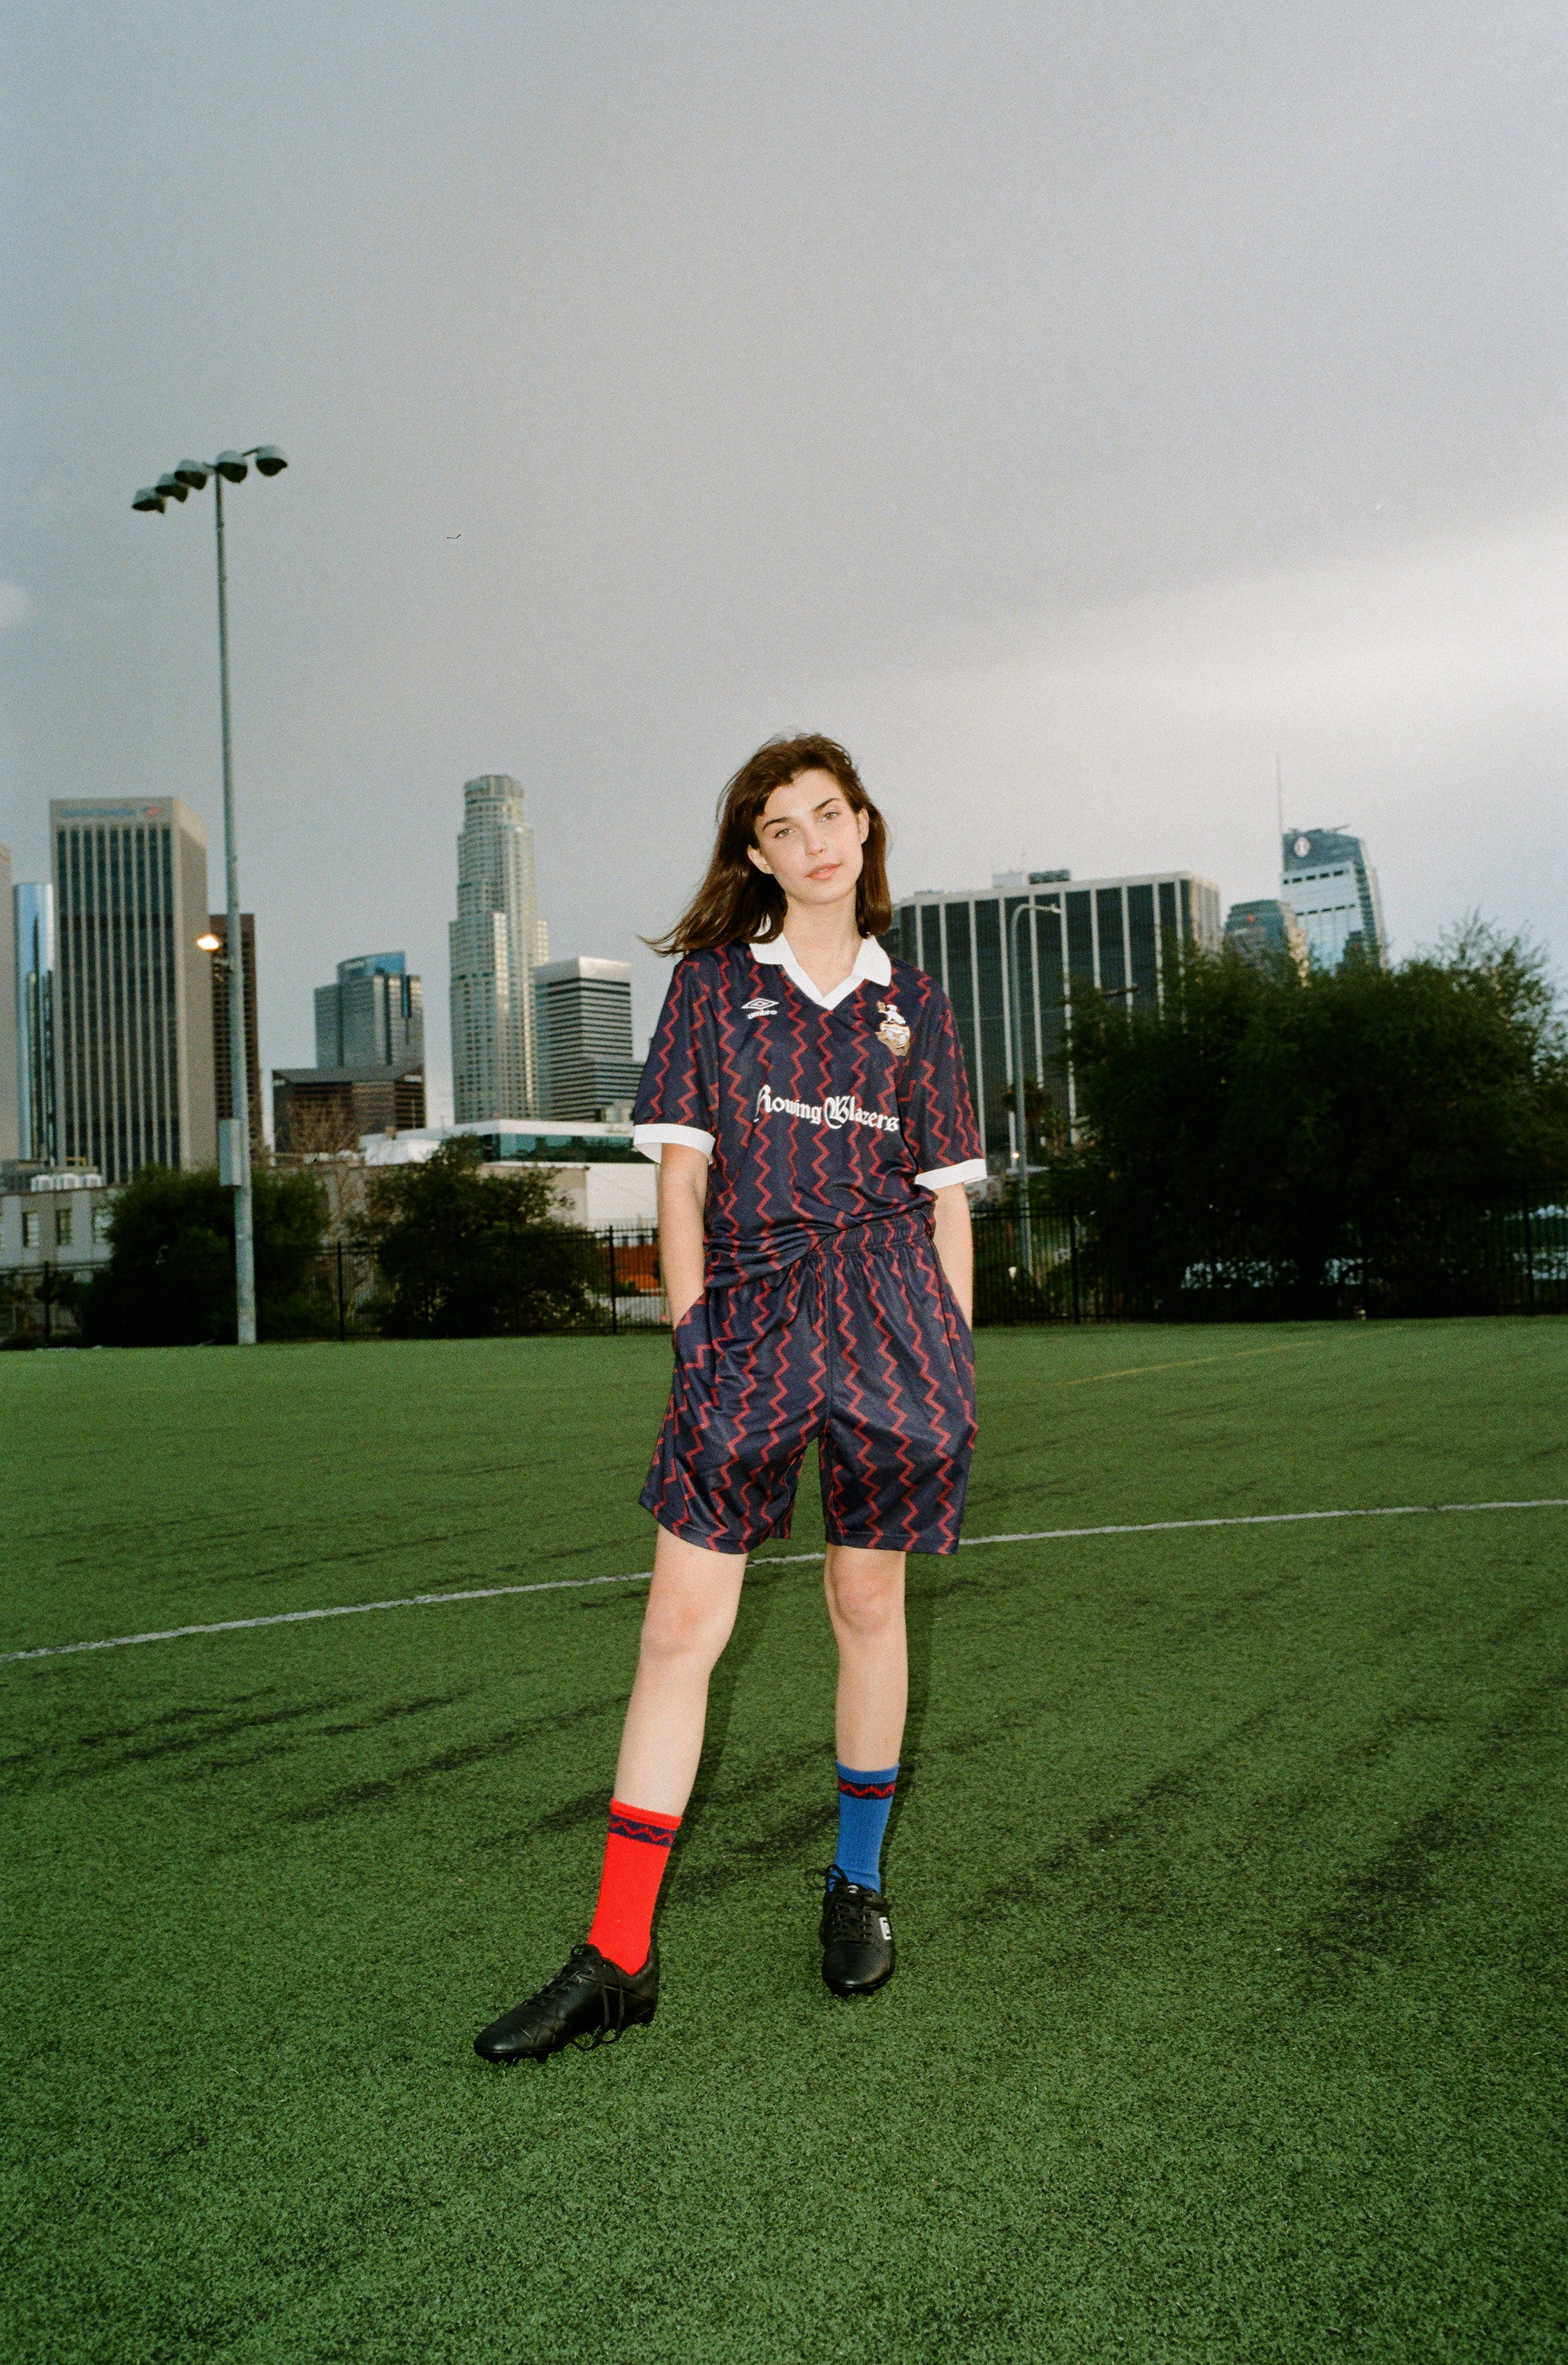 Female model wearing the Rowing Blazers X Umbro Red and Navy Zig-Zag Soccer Jersey and the Soccer Shorts